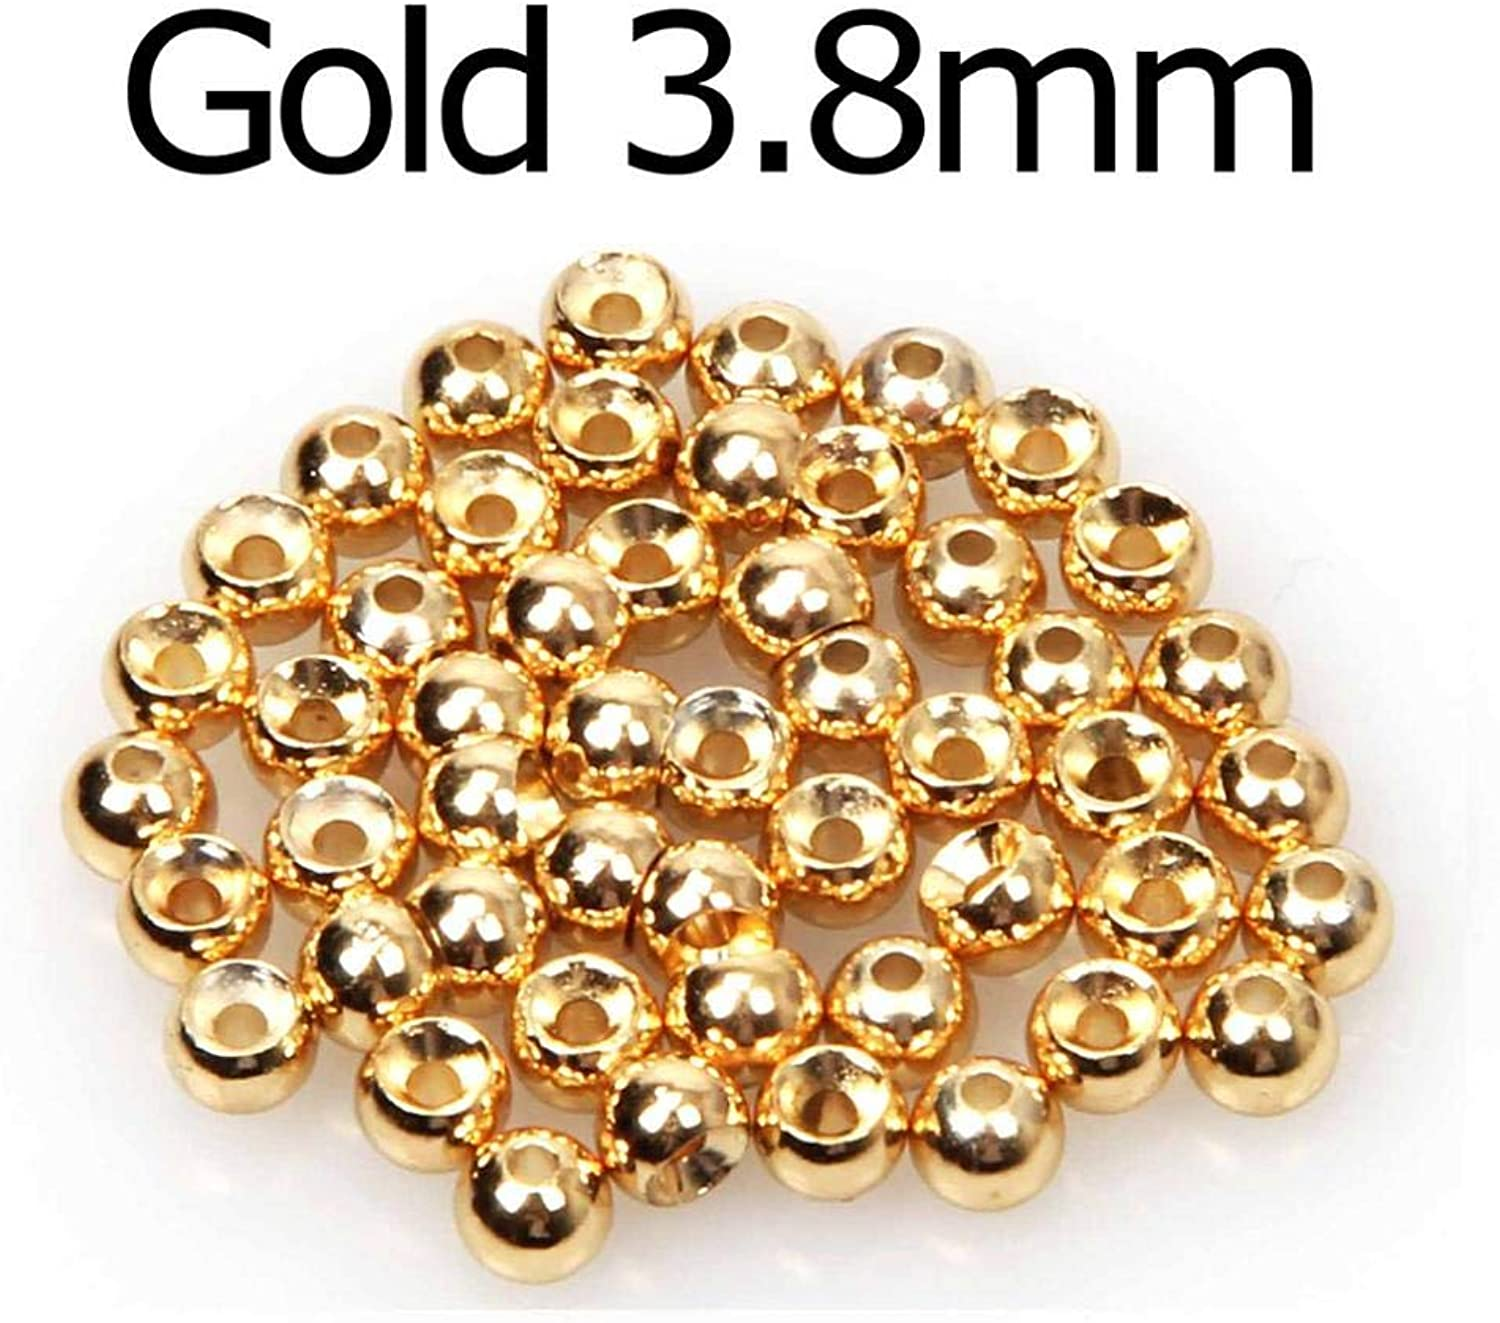 Generic Fly Fishing 50pcs   lot Fly Tying Tungsten Beads Fly Fishing Nymph Head Ball Beads gold Silver Copper Beads g3.8